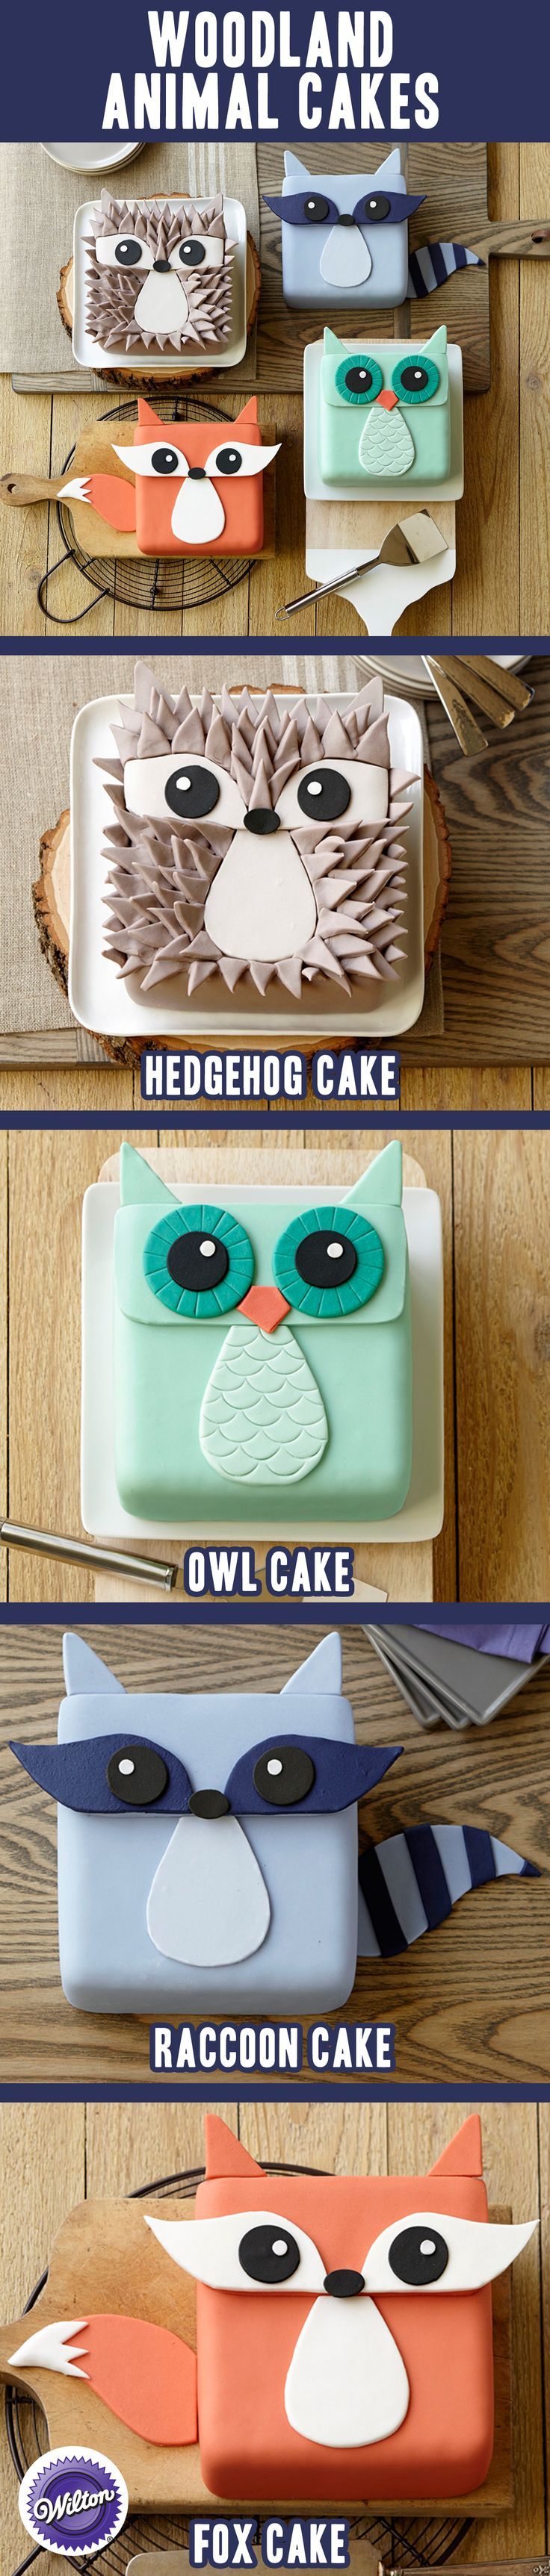 Animal Cakes - Instructions and Pattern